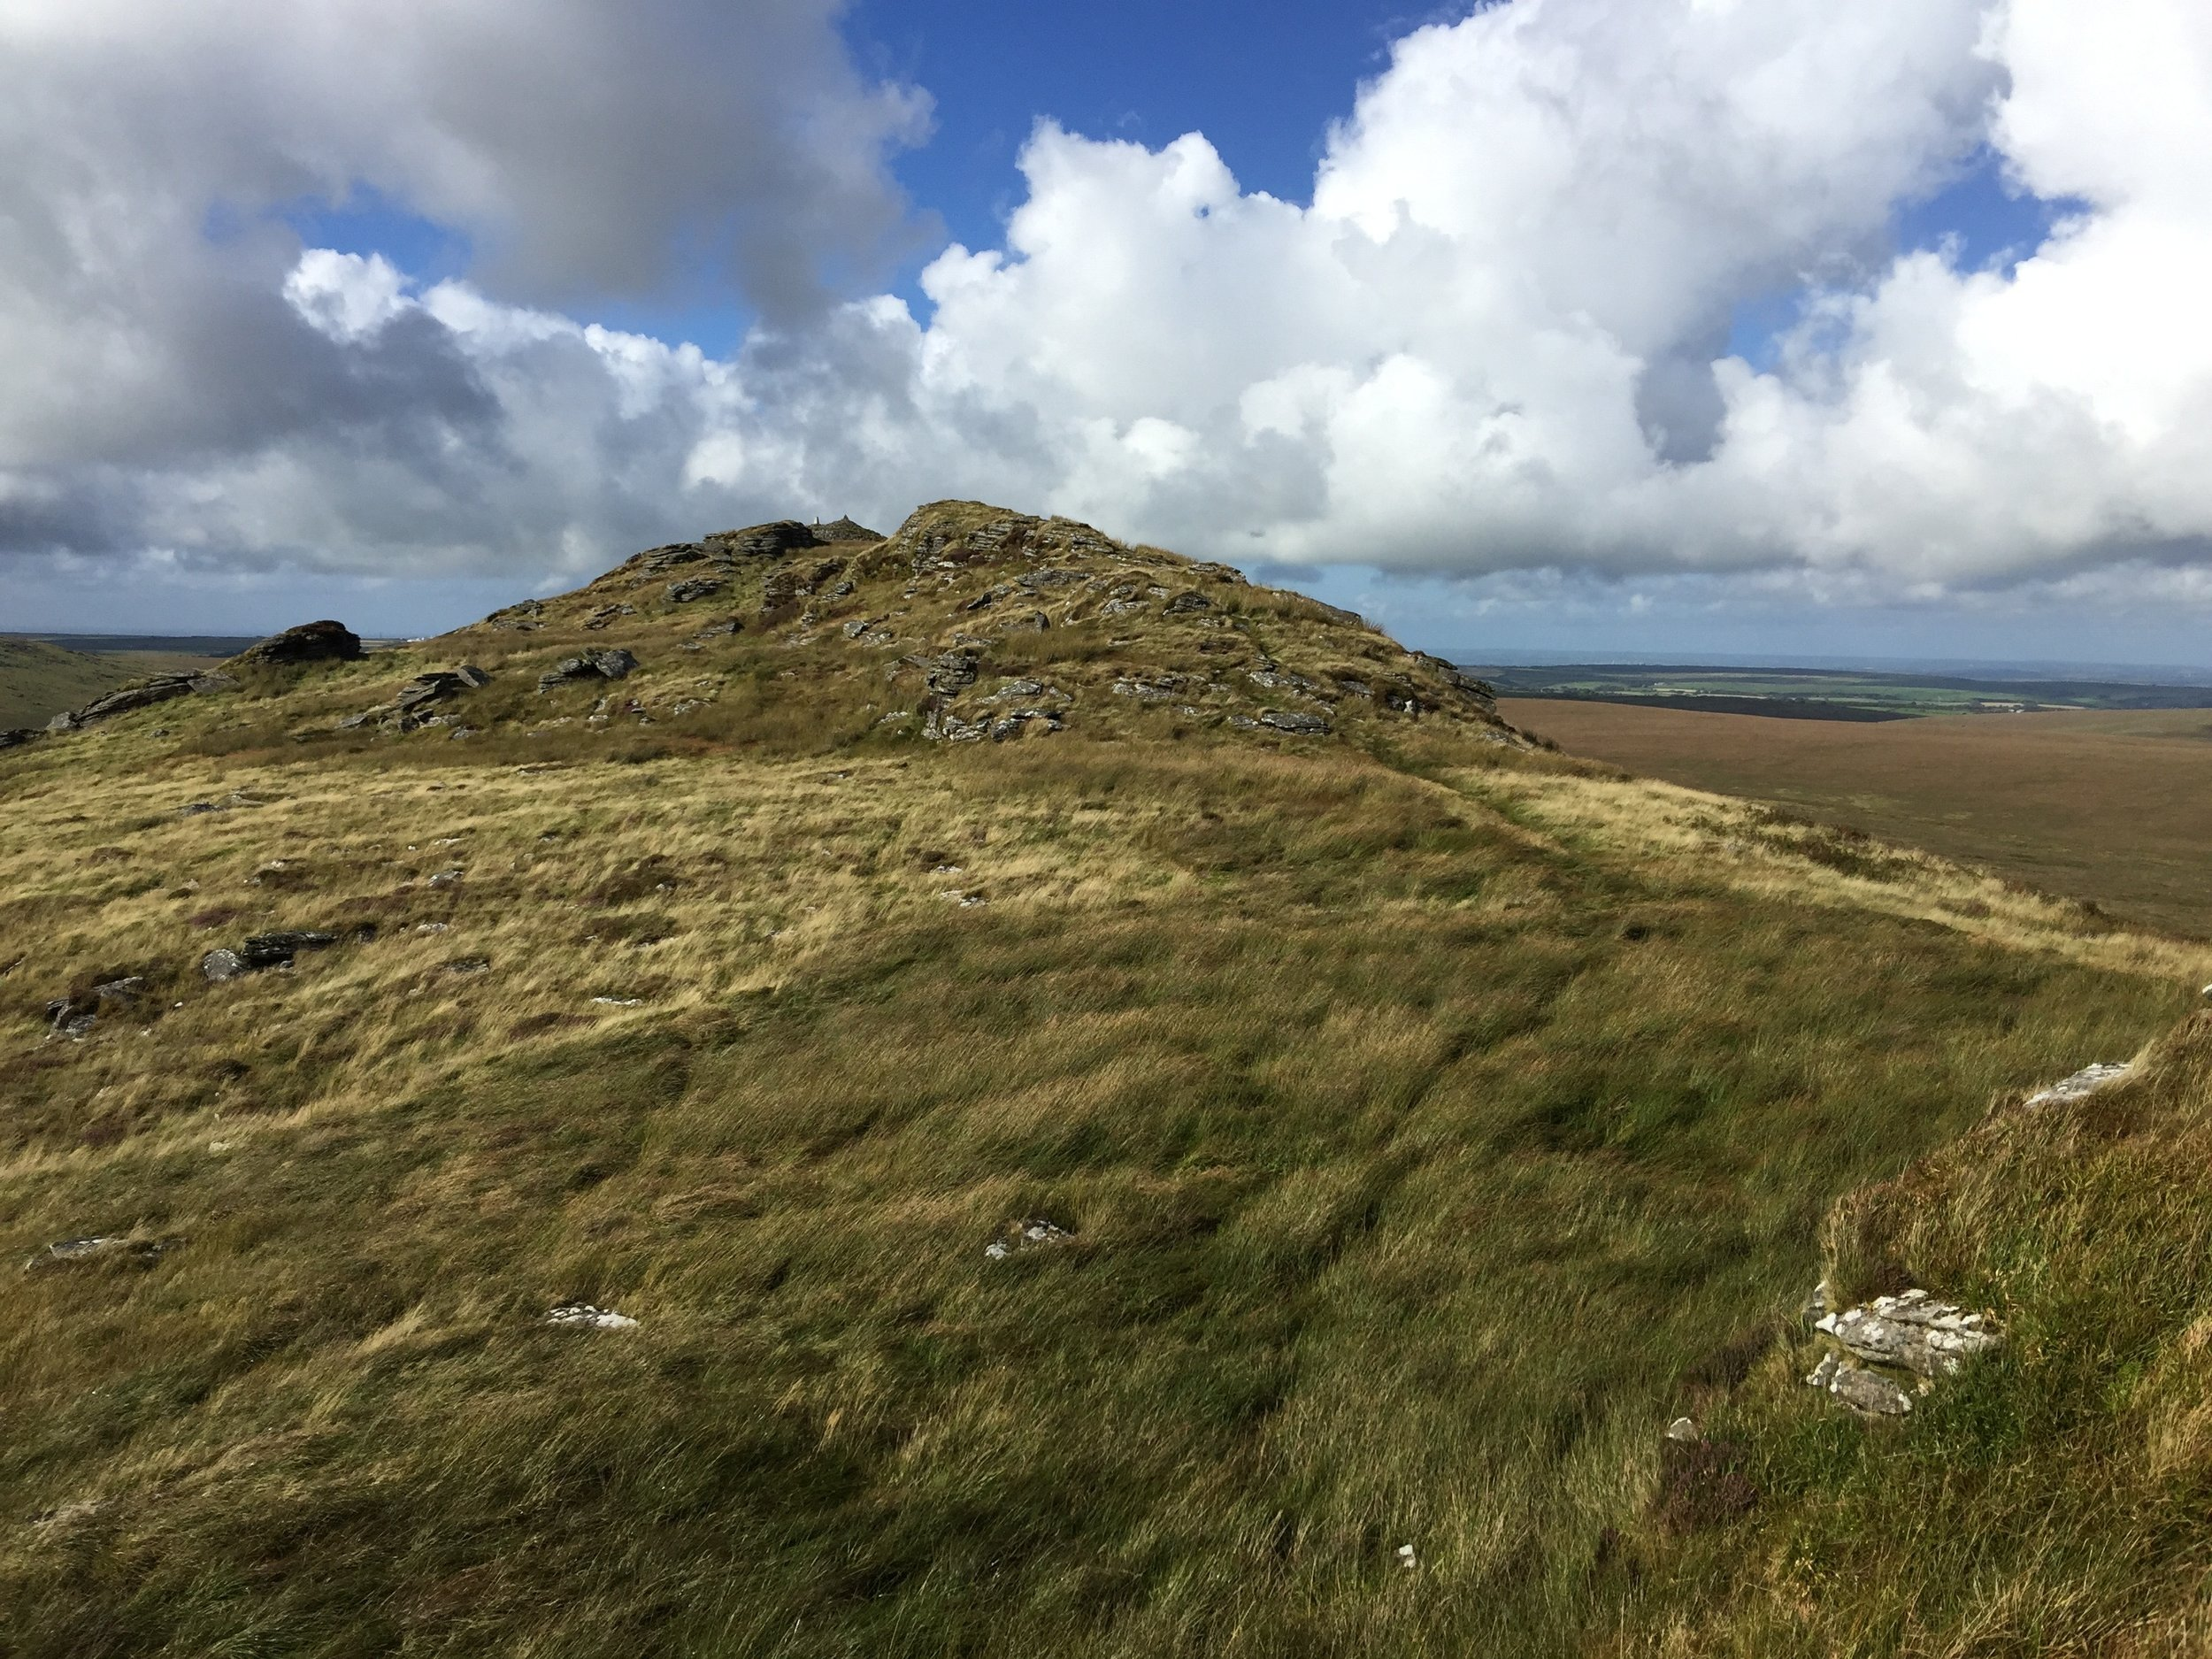 Nearby Rough Tor on Bodmin Moor with magnificent views